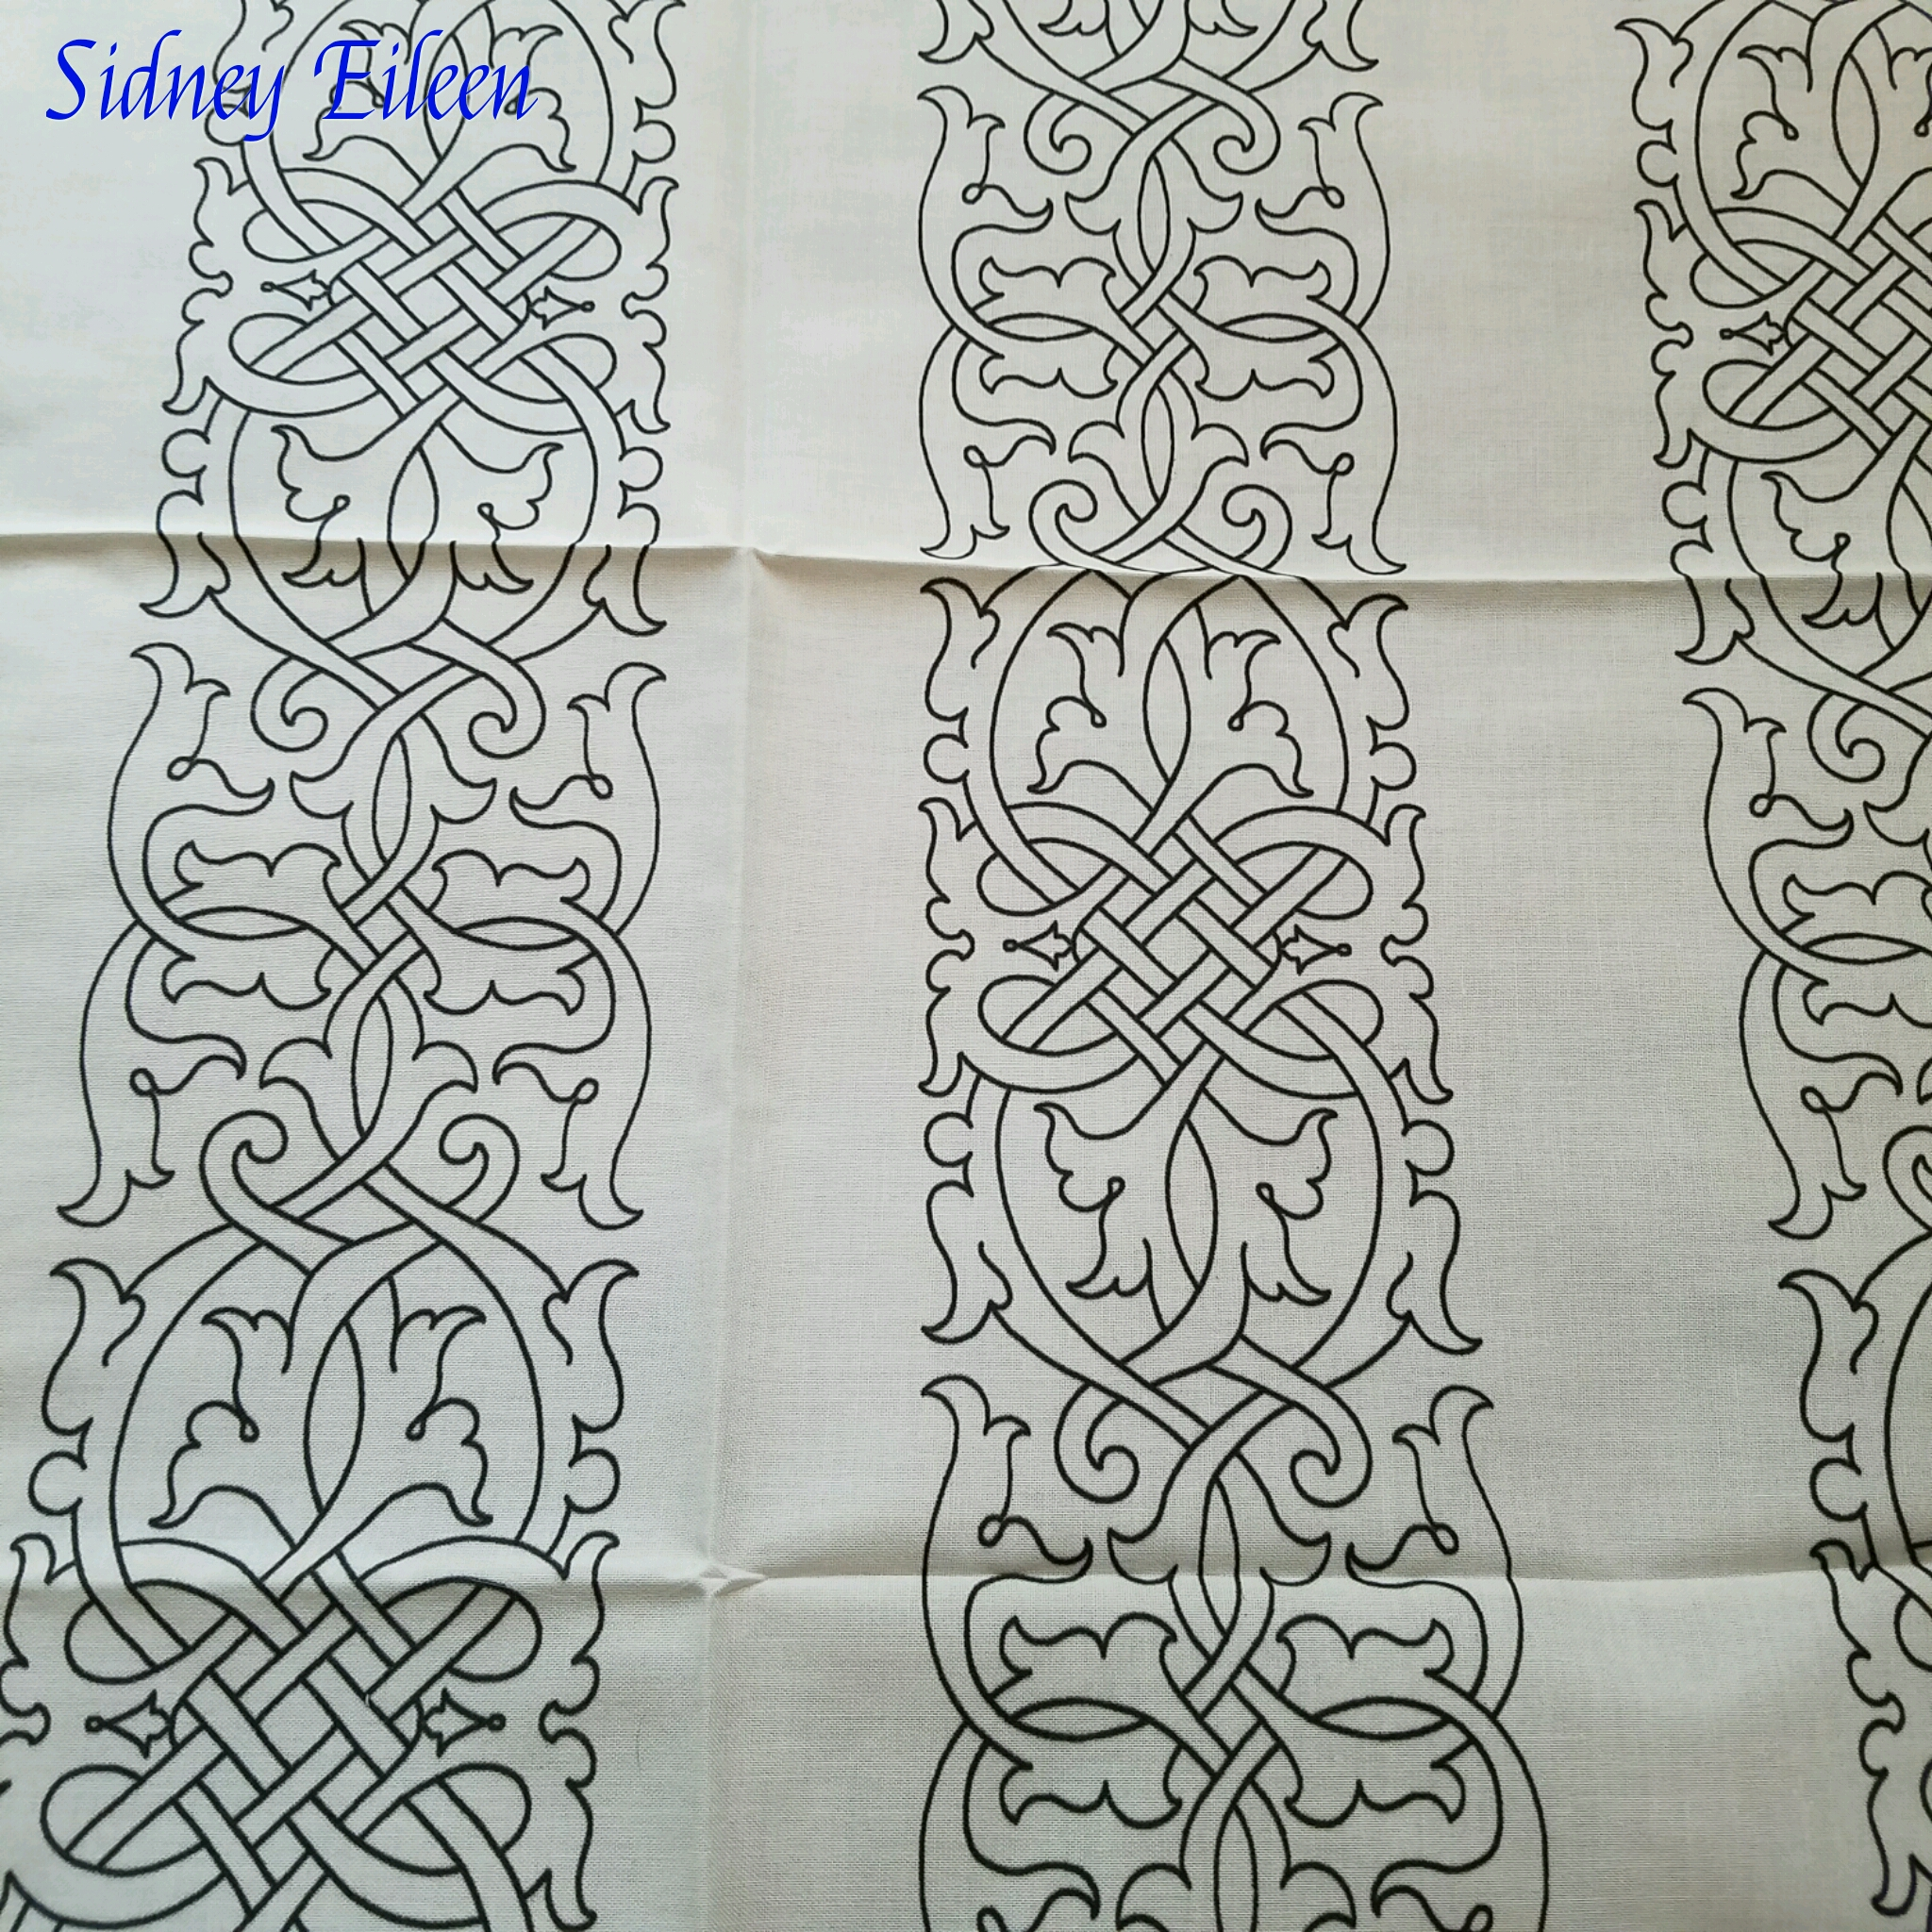 Tudor Floral Knotwork on Spoonflower Fabric